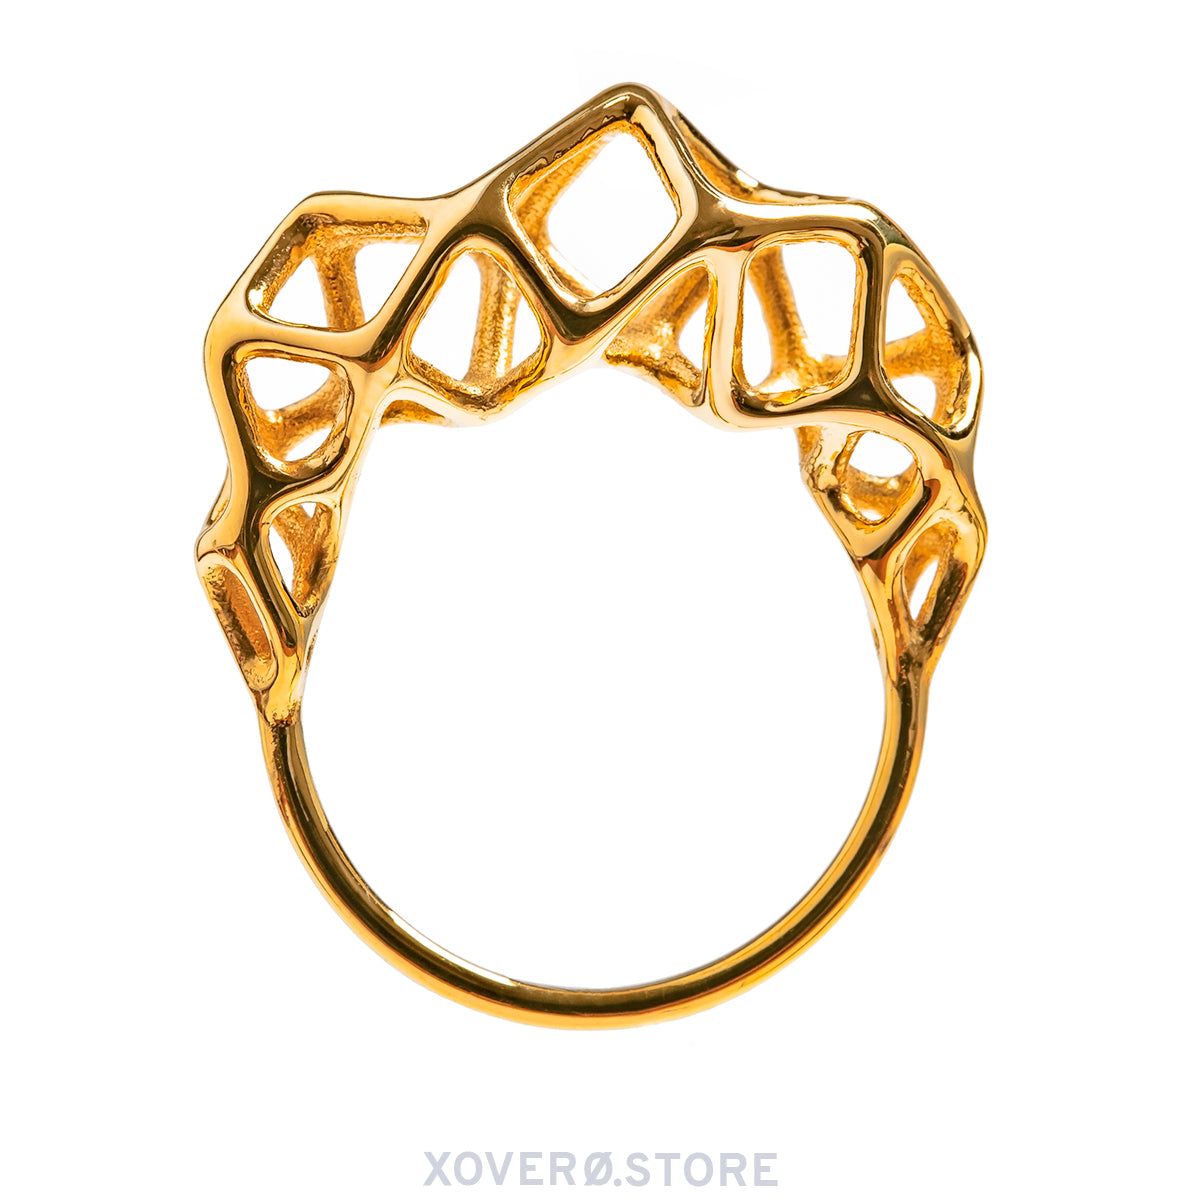 CYTO - 3d Printed Ring - Sterling or Gold Plated